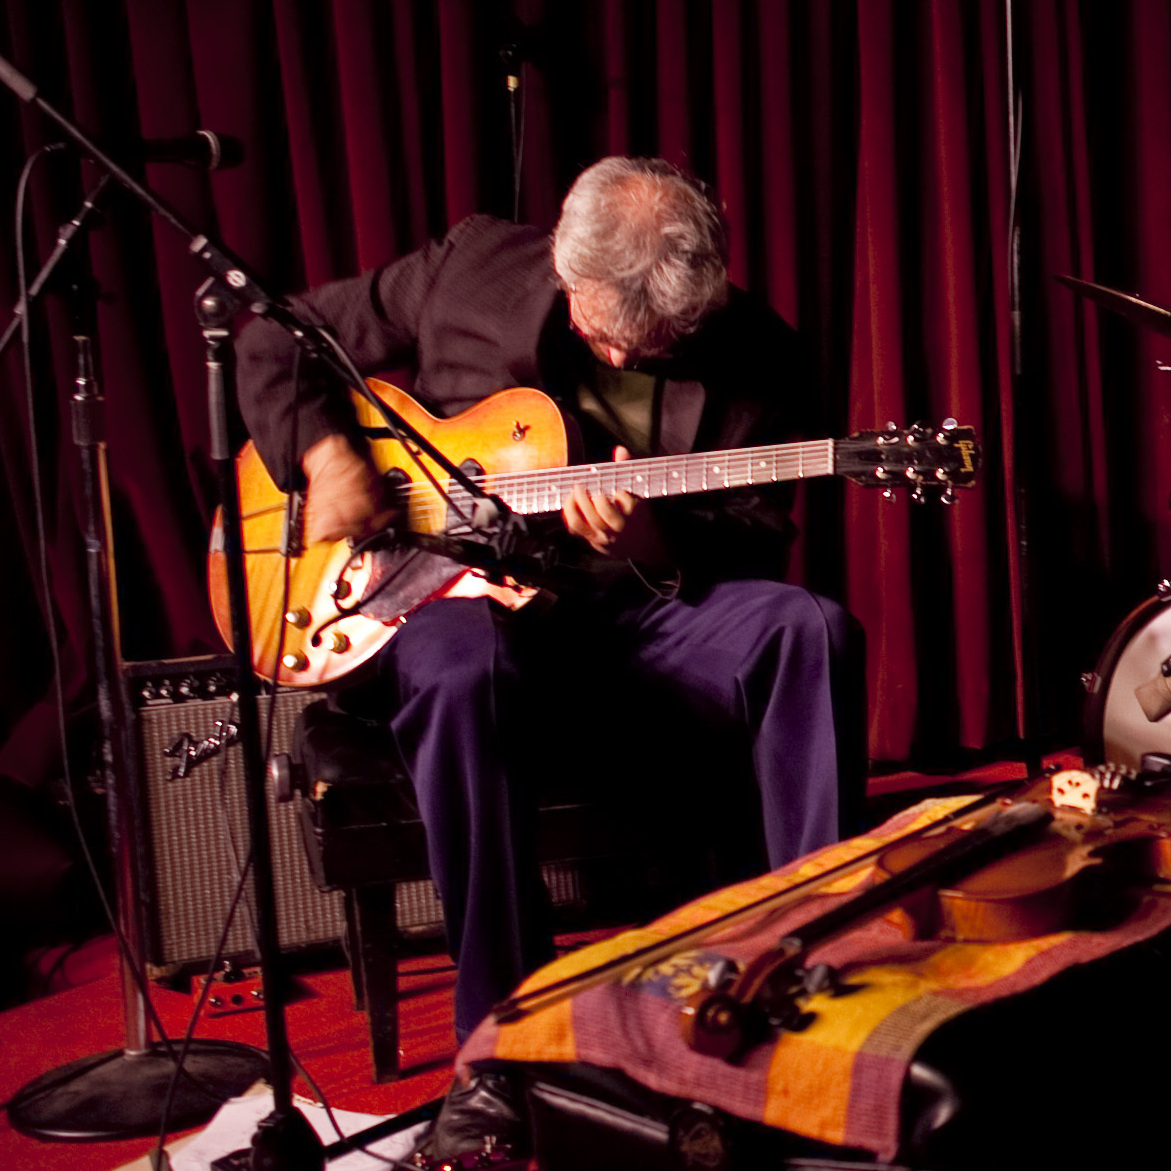 From left, Marc Ribot (guitar), Chad Taylor (drums) and Henry Grimes (bass) performed at the Village Vanguard in New York City on Wednesday, June 27, 2012.